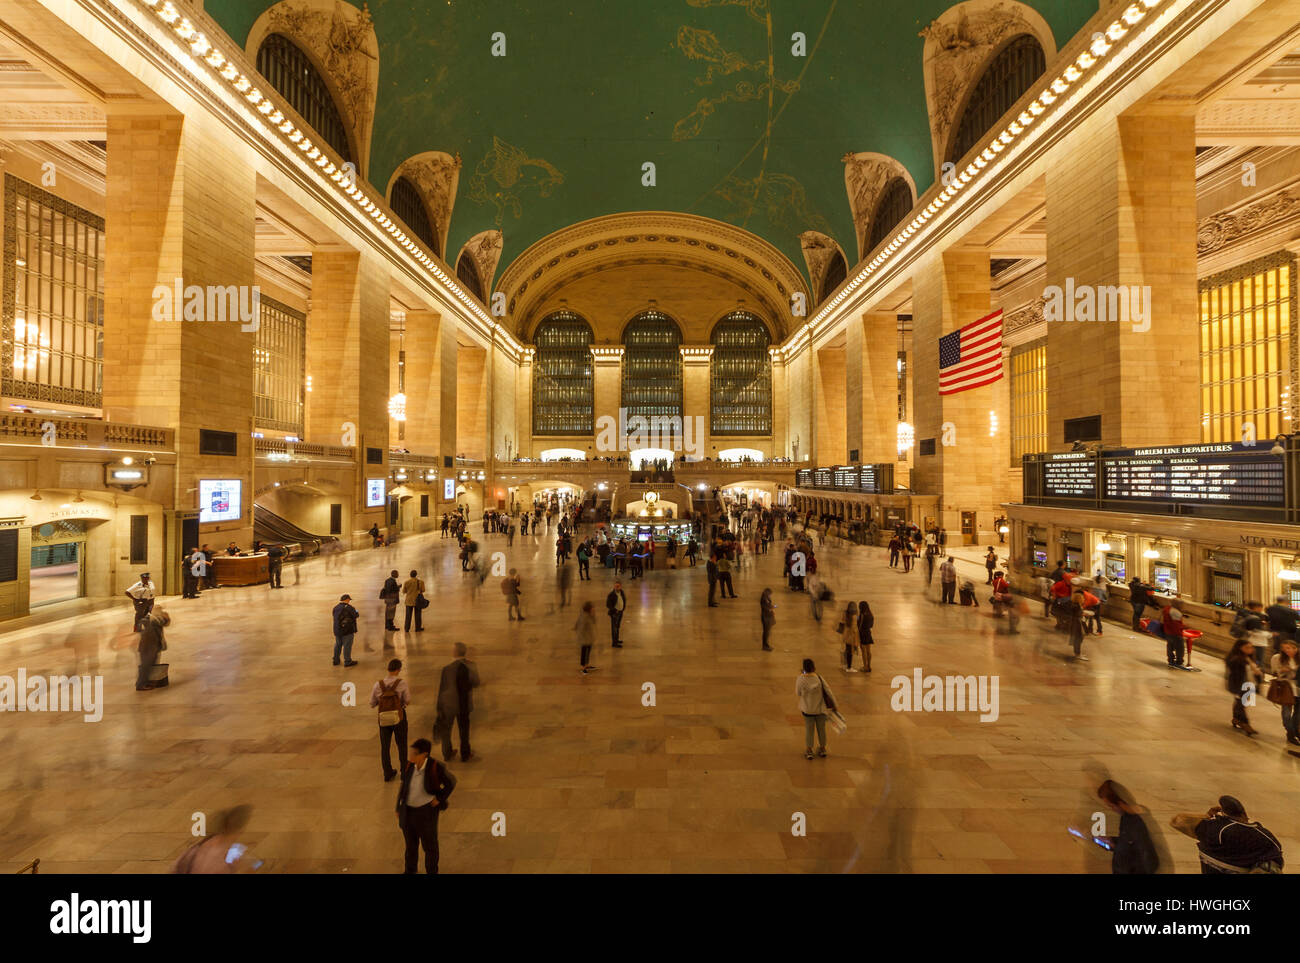 Grand Central Terminal, Manhattan, New York City, New York, USA - Stock Image